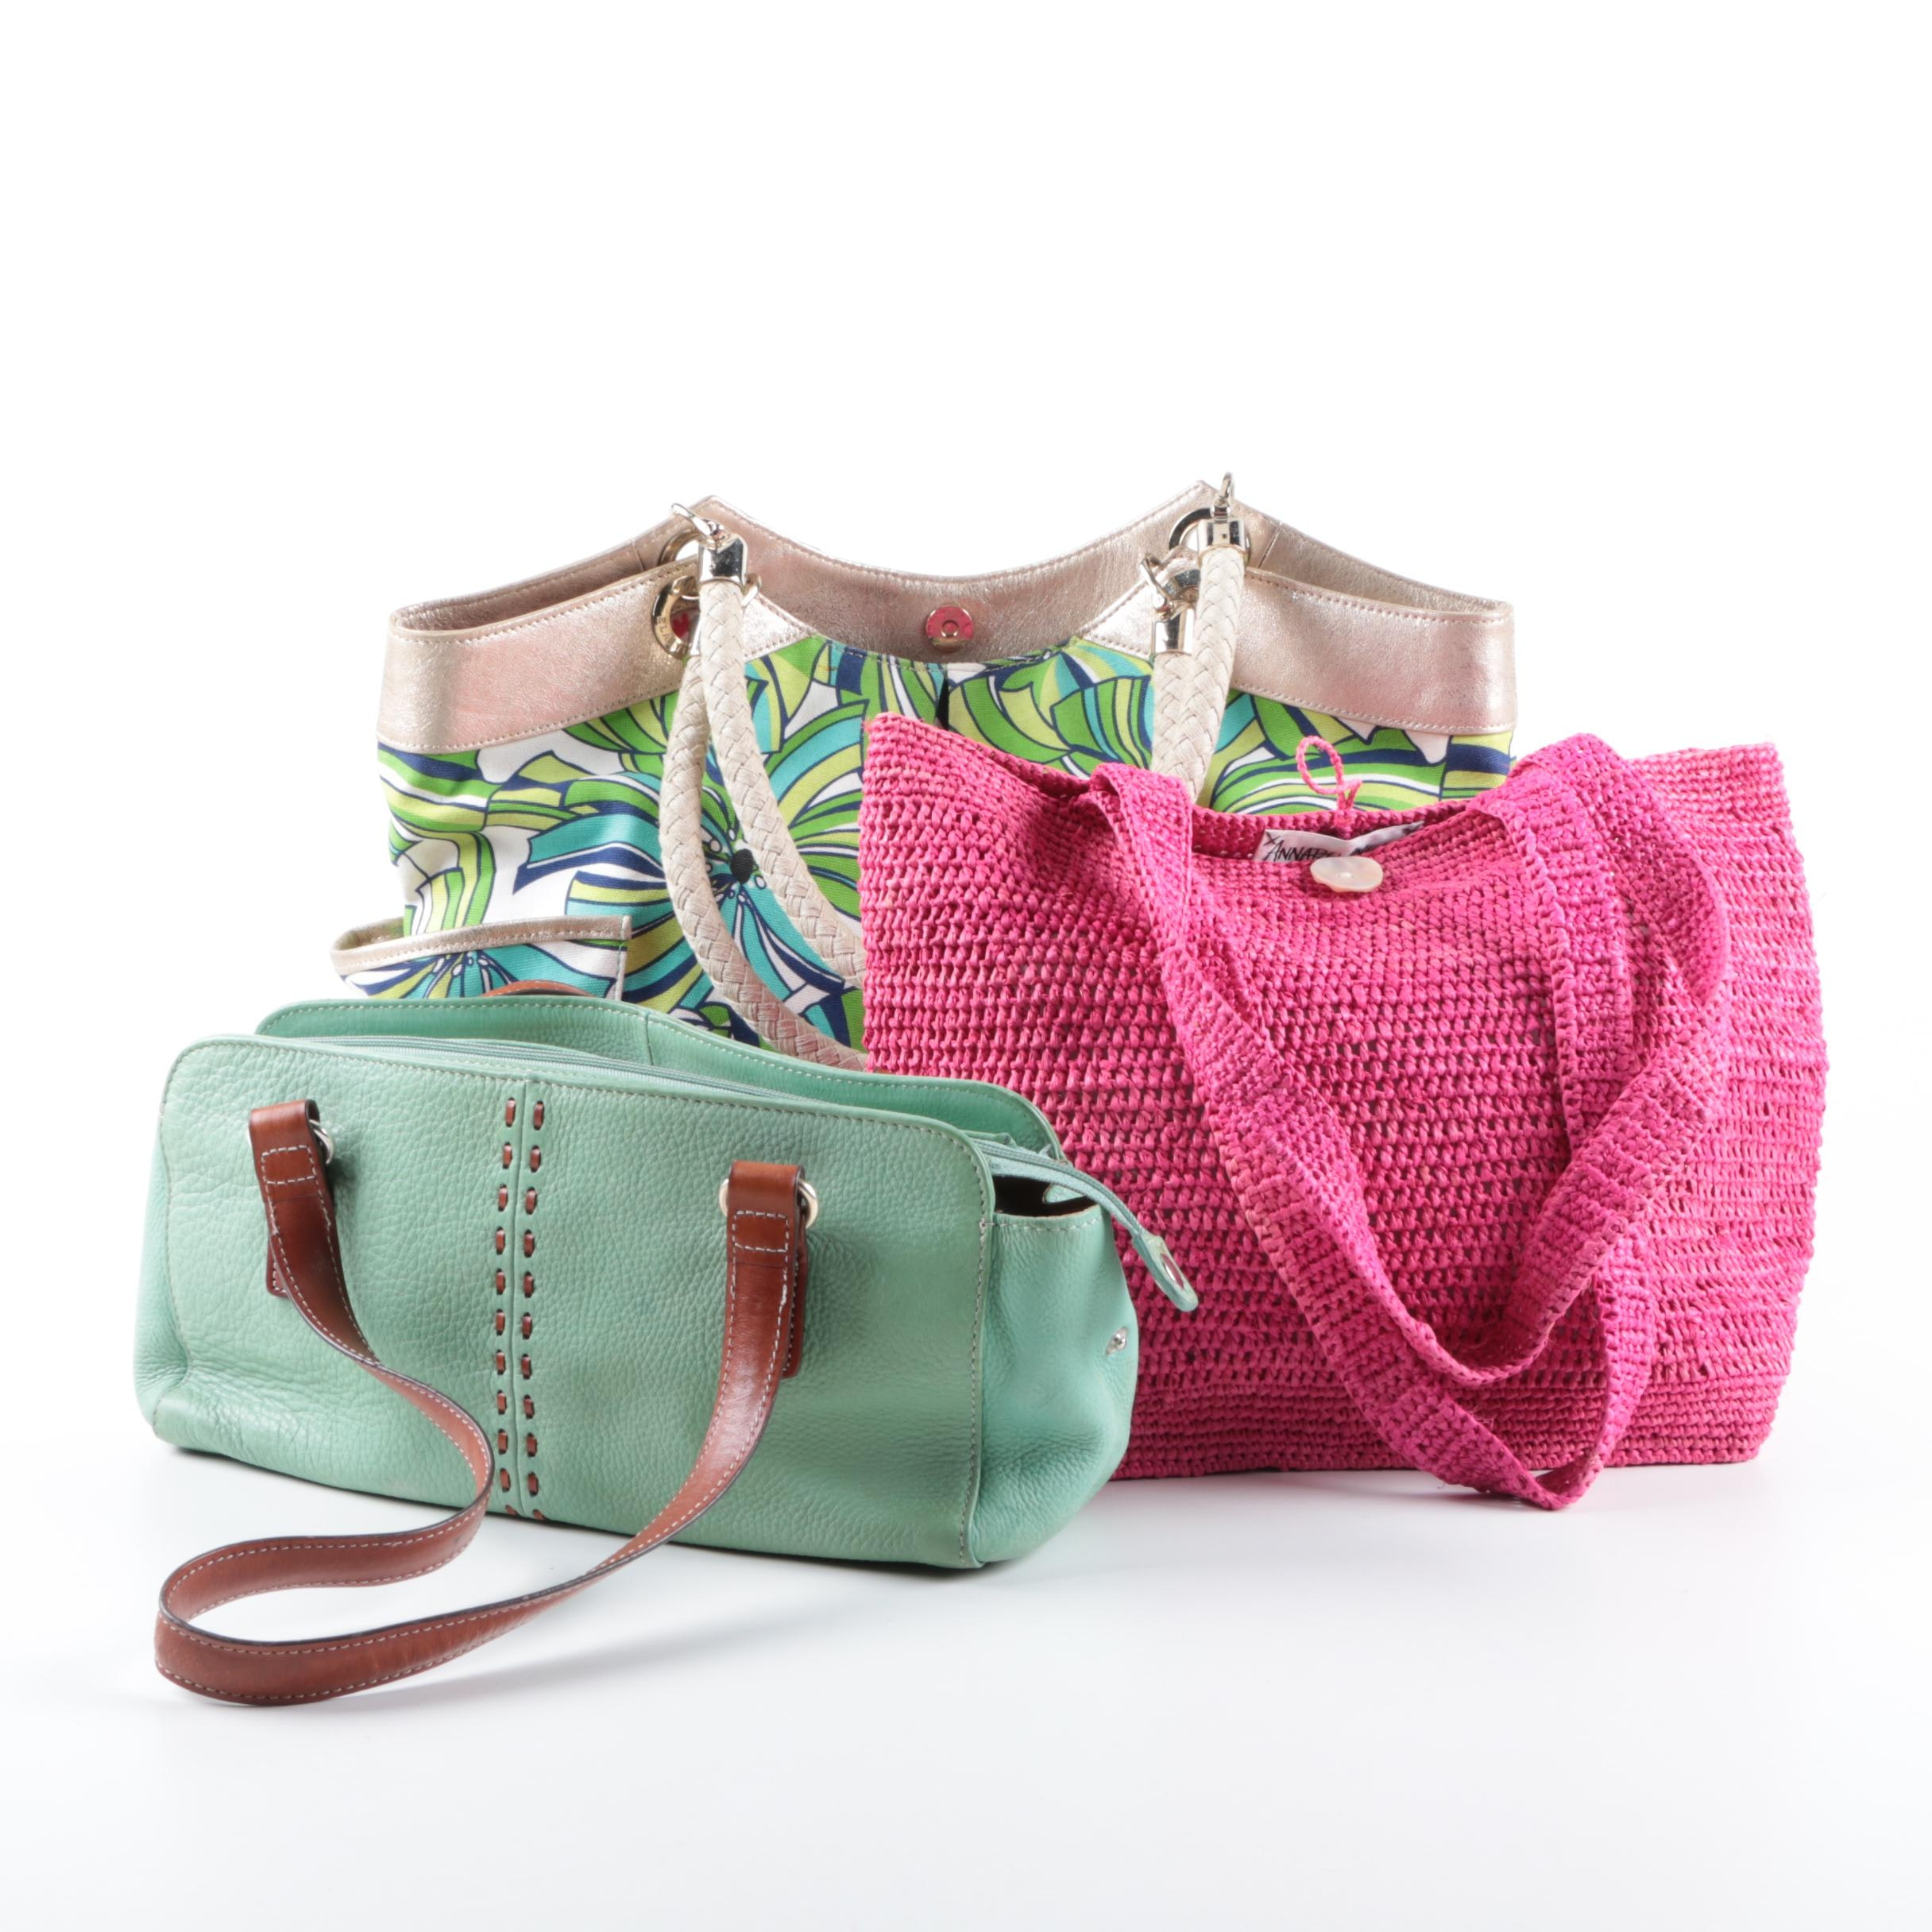 Women's Colorful Handbags Including Annabel Ingall